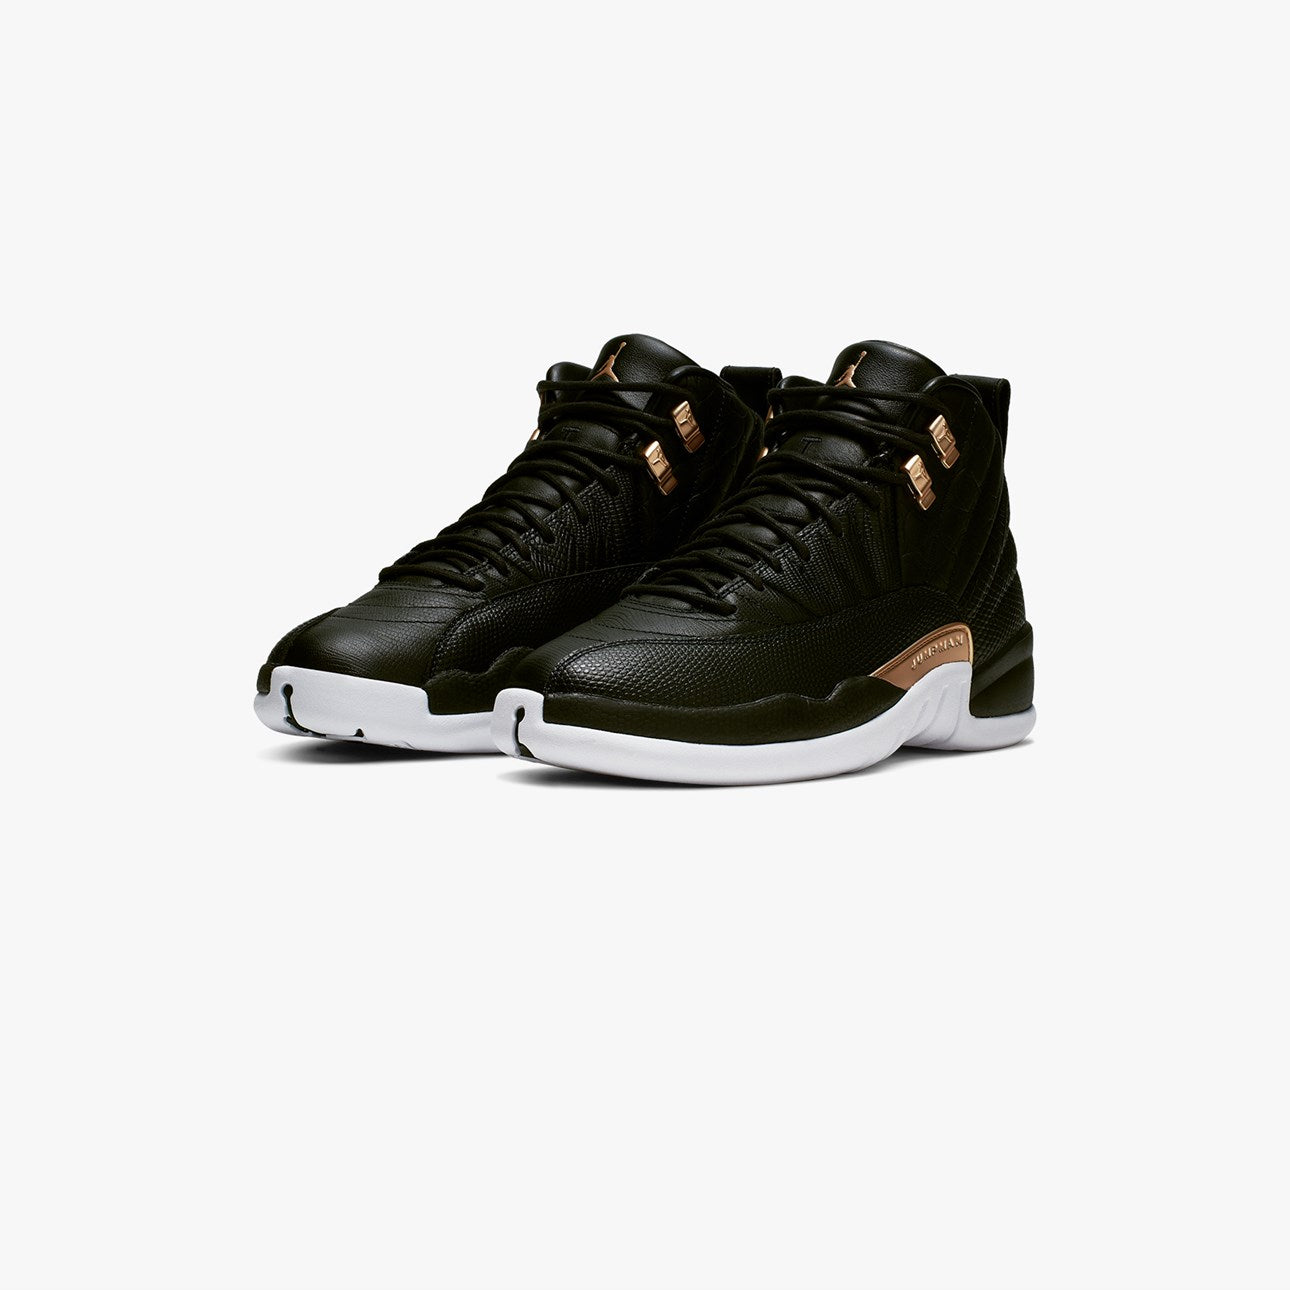 pretty nice 1276e 33cd3 To complete the design, a White outsole unit is added. Women s Air Jordan 12.  BLACK METALLIC GOLD-WHITE AO6068-007